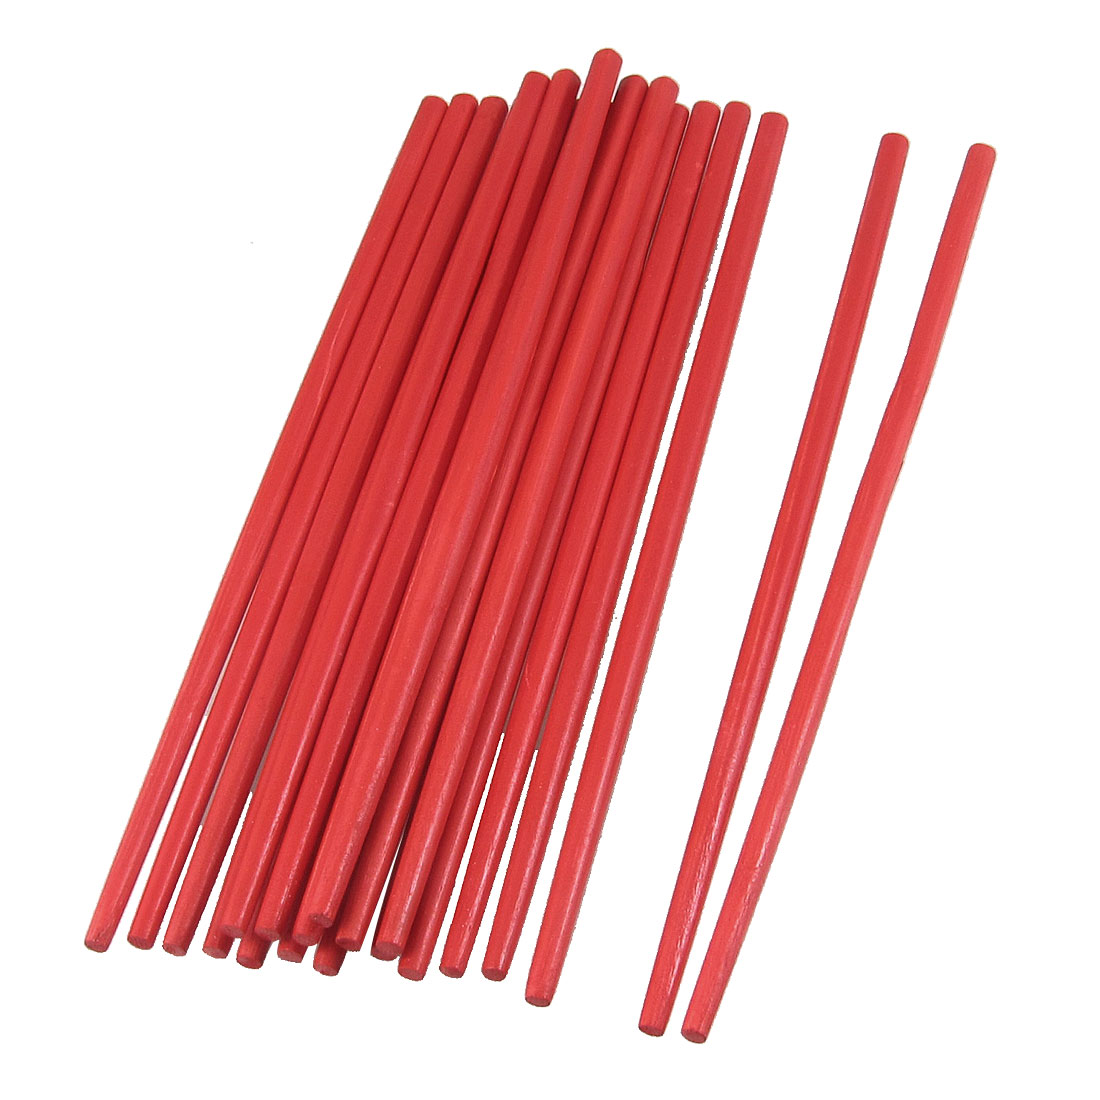 "10 Pairs 9.4"" Long Kitchen Tableware Handcrafted Bamboo Chopsticks Red"